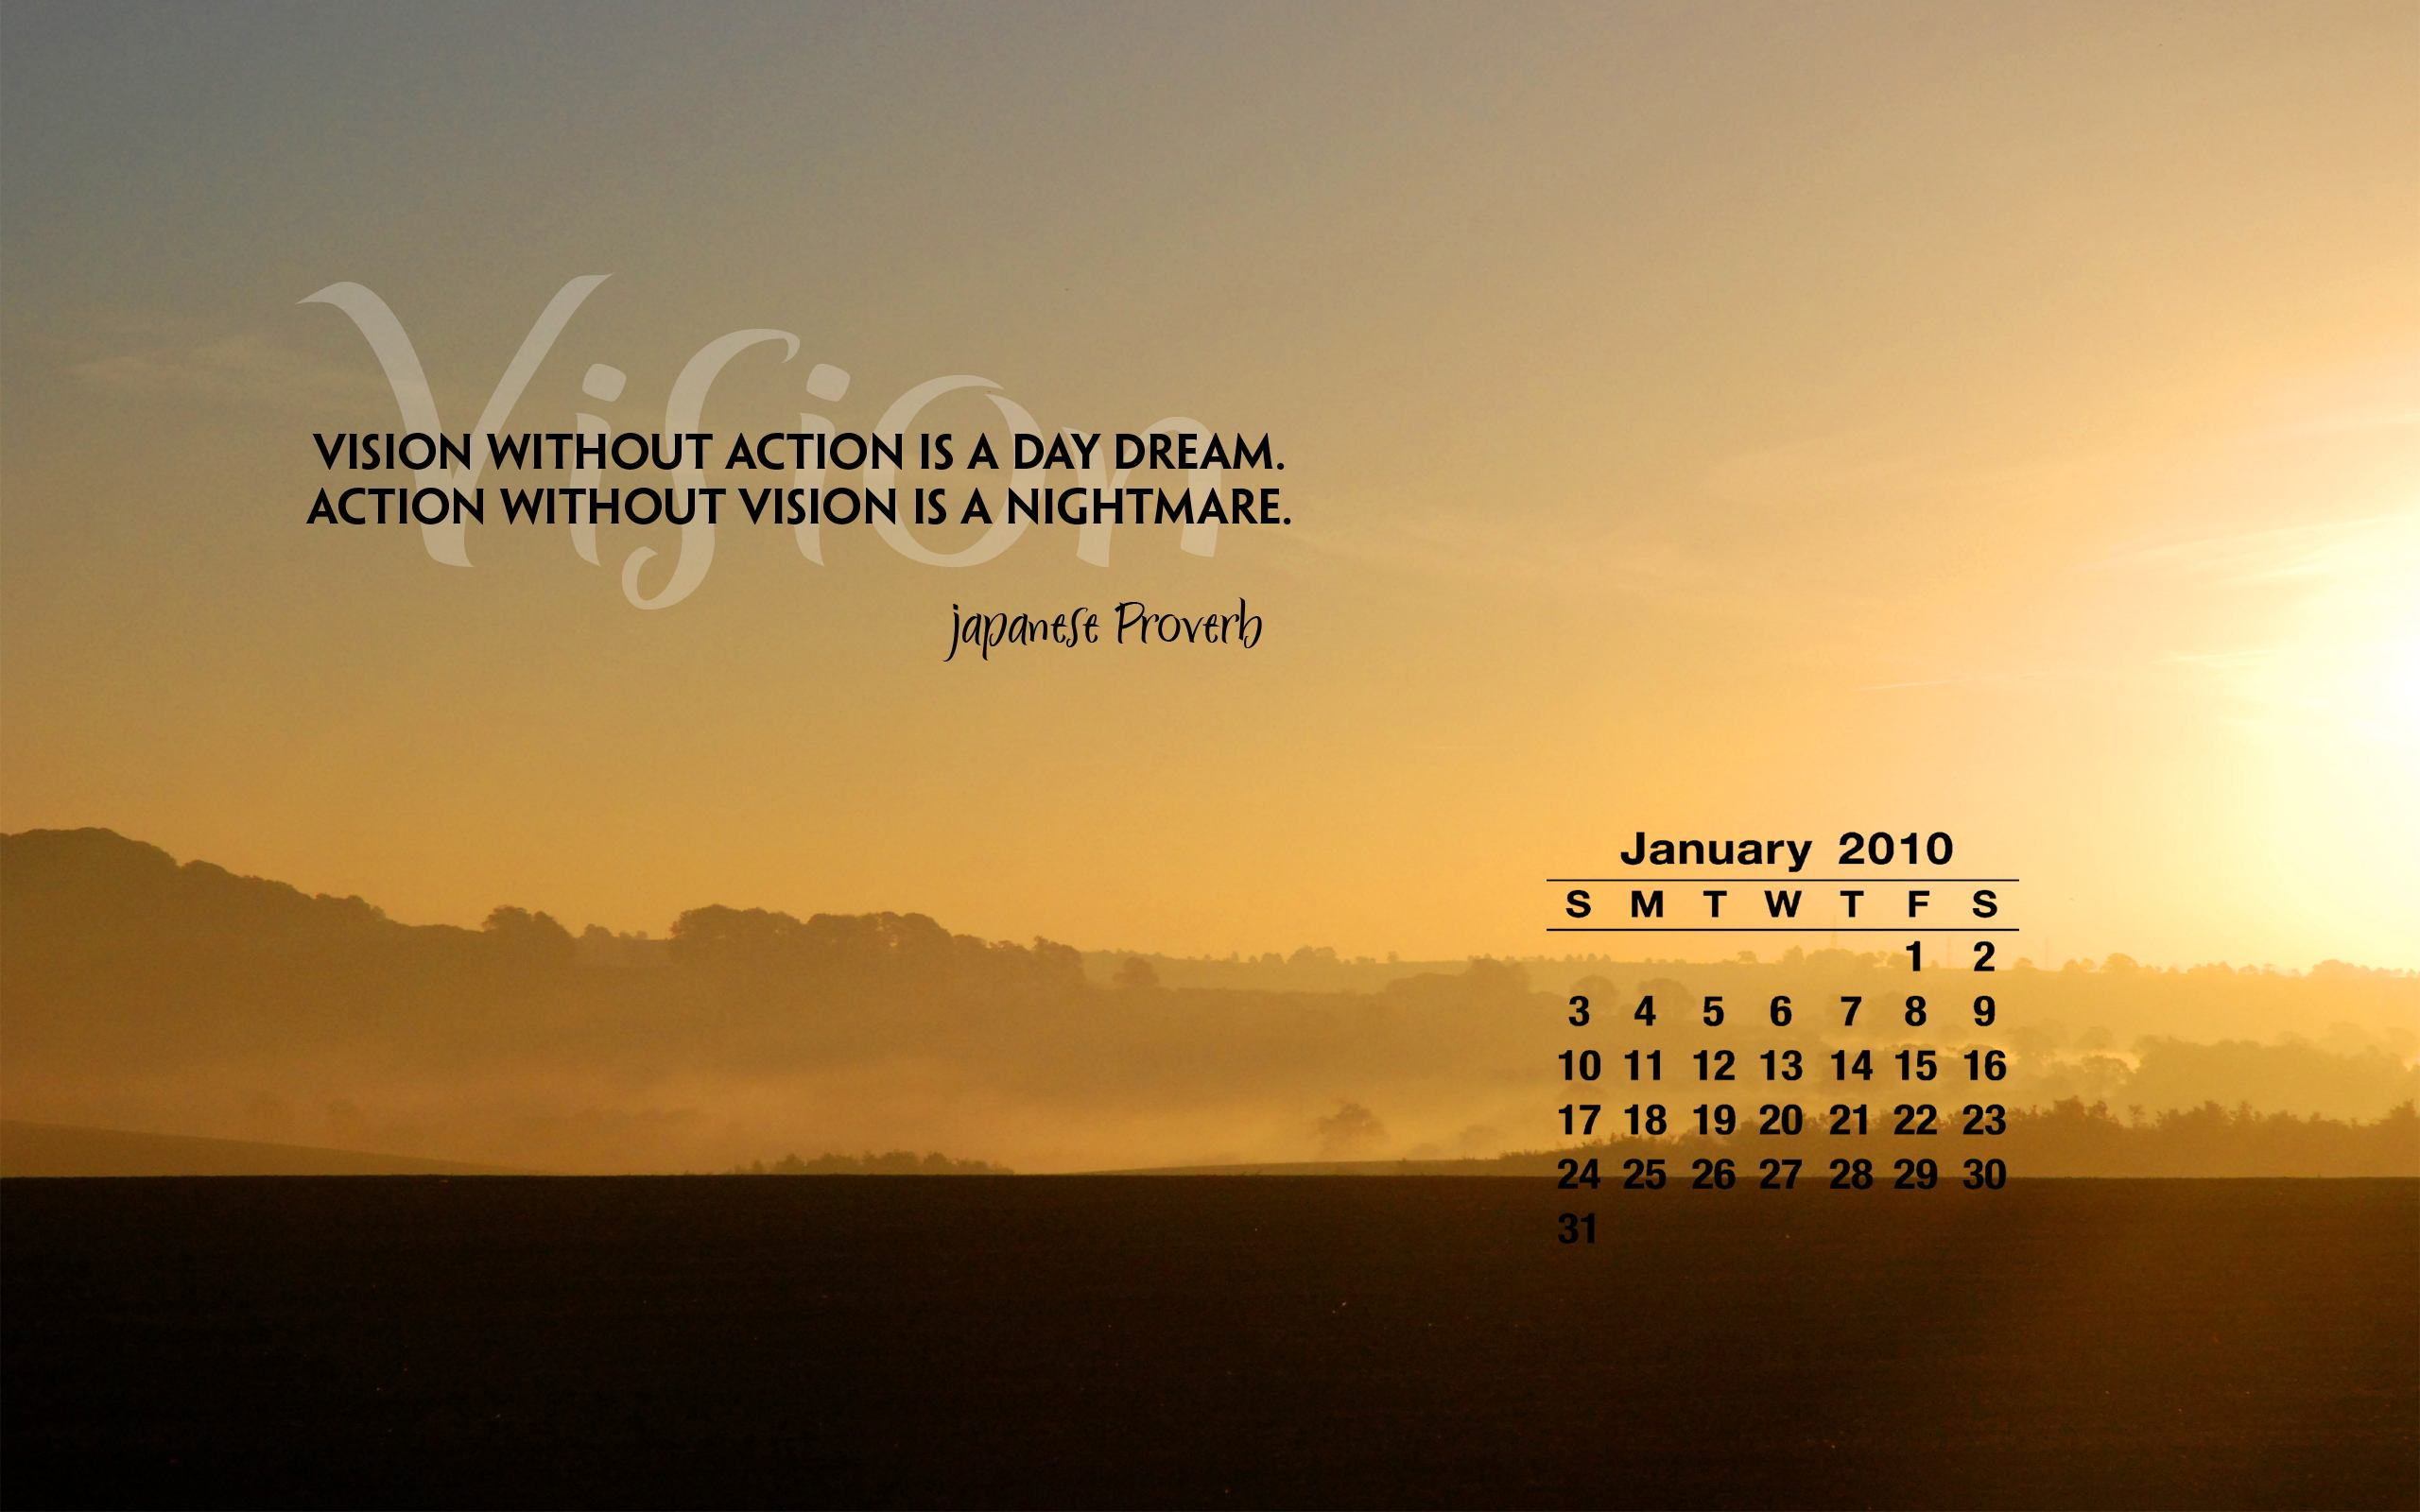 February Quotes And Sayings For Calendars Quotesgram